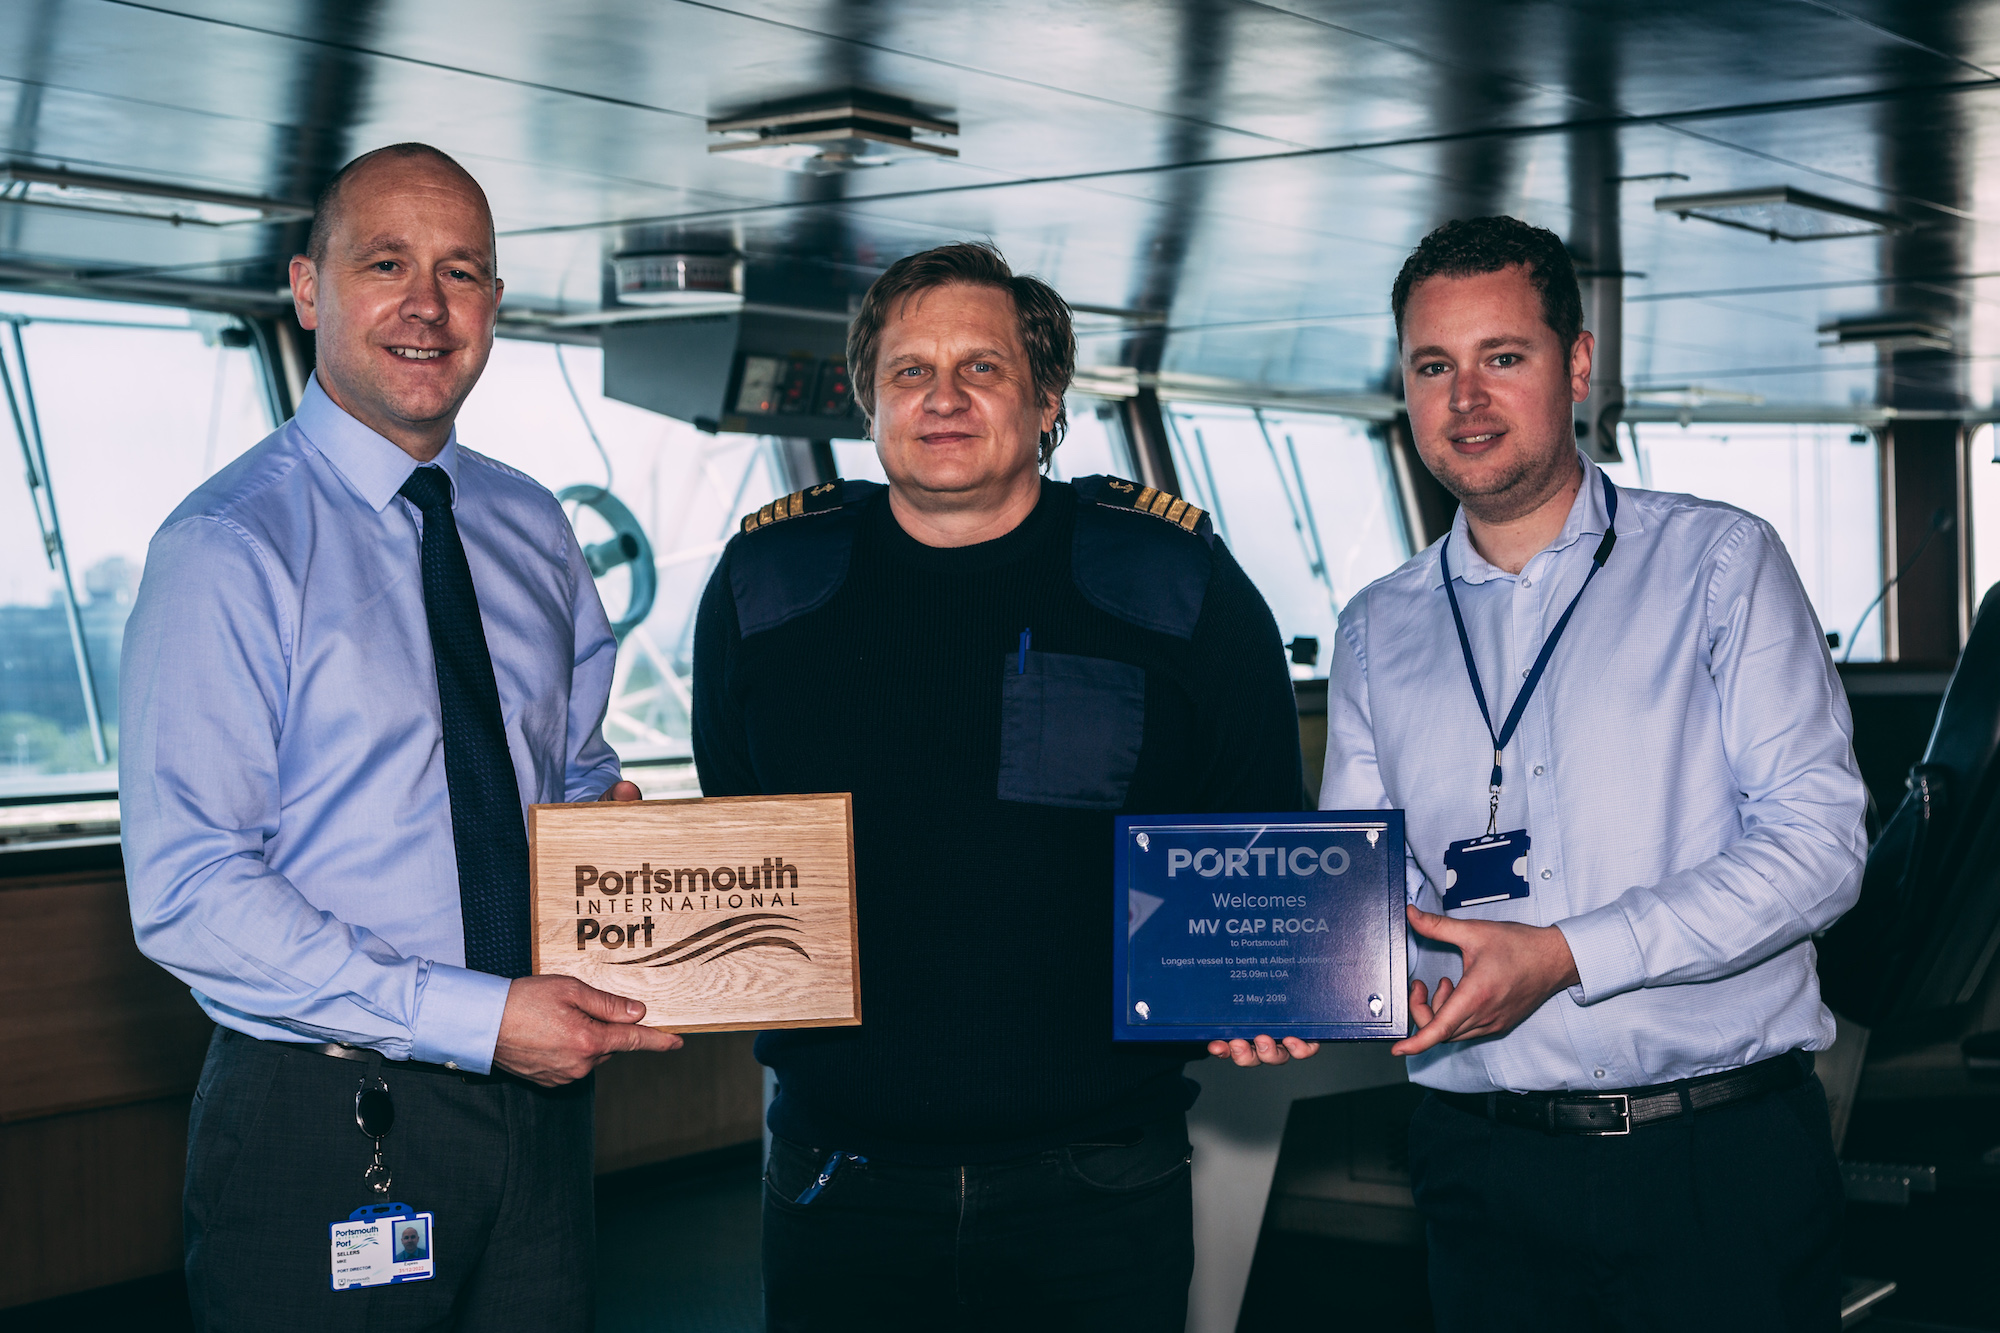 From left to right: Port director, Mike Sellers; Captain of the MV Cap Roca, Przemyslaw Dominiak; and Operations Planning Manager at Portico, David Pennery.